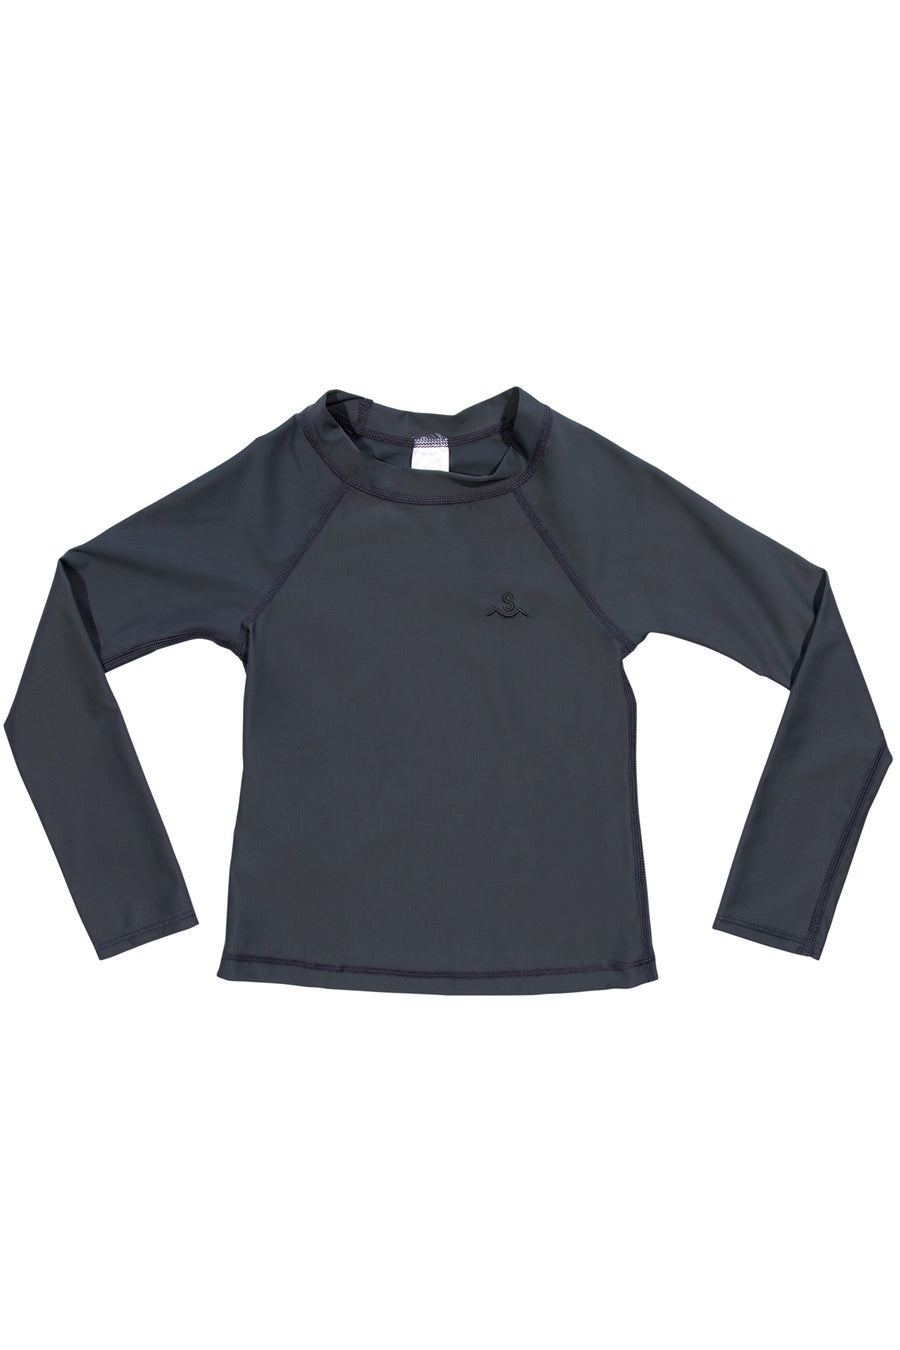 Kids Rashguard / Charcoal